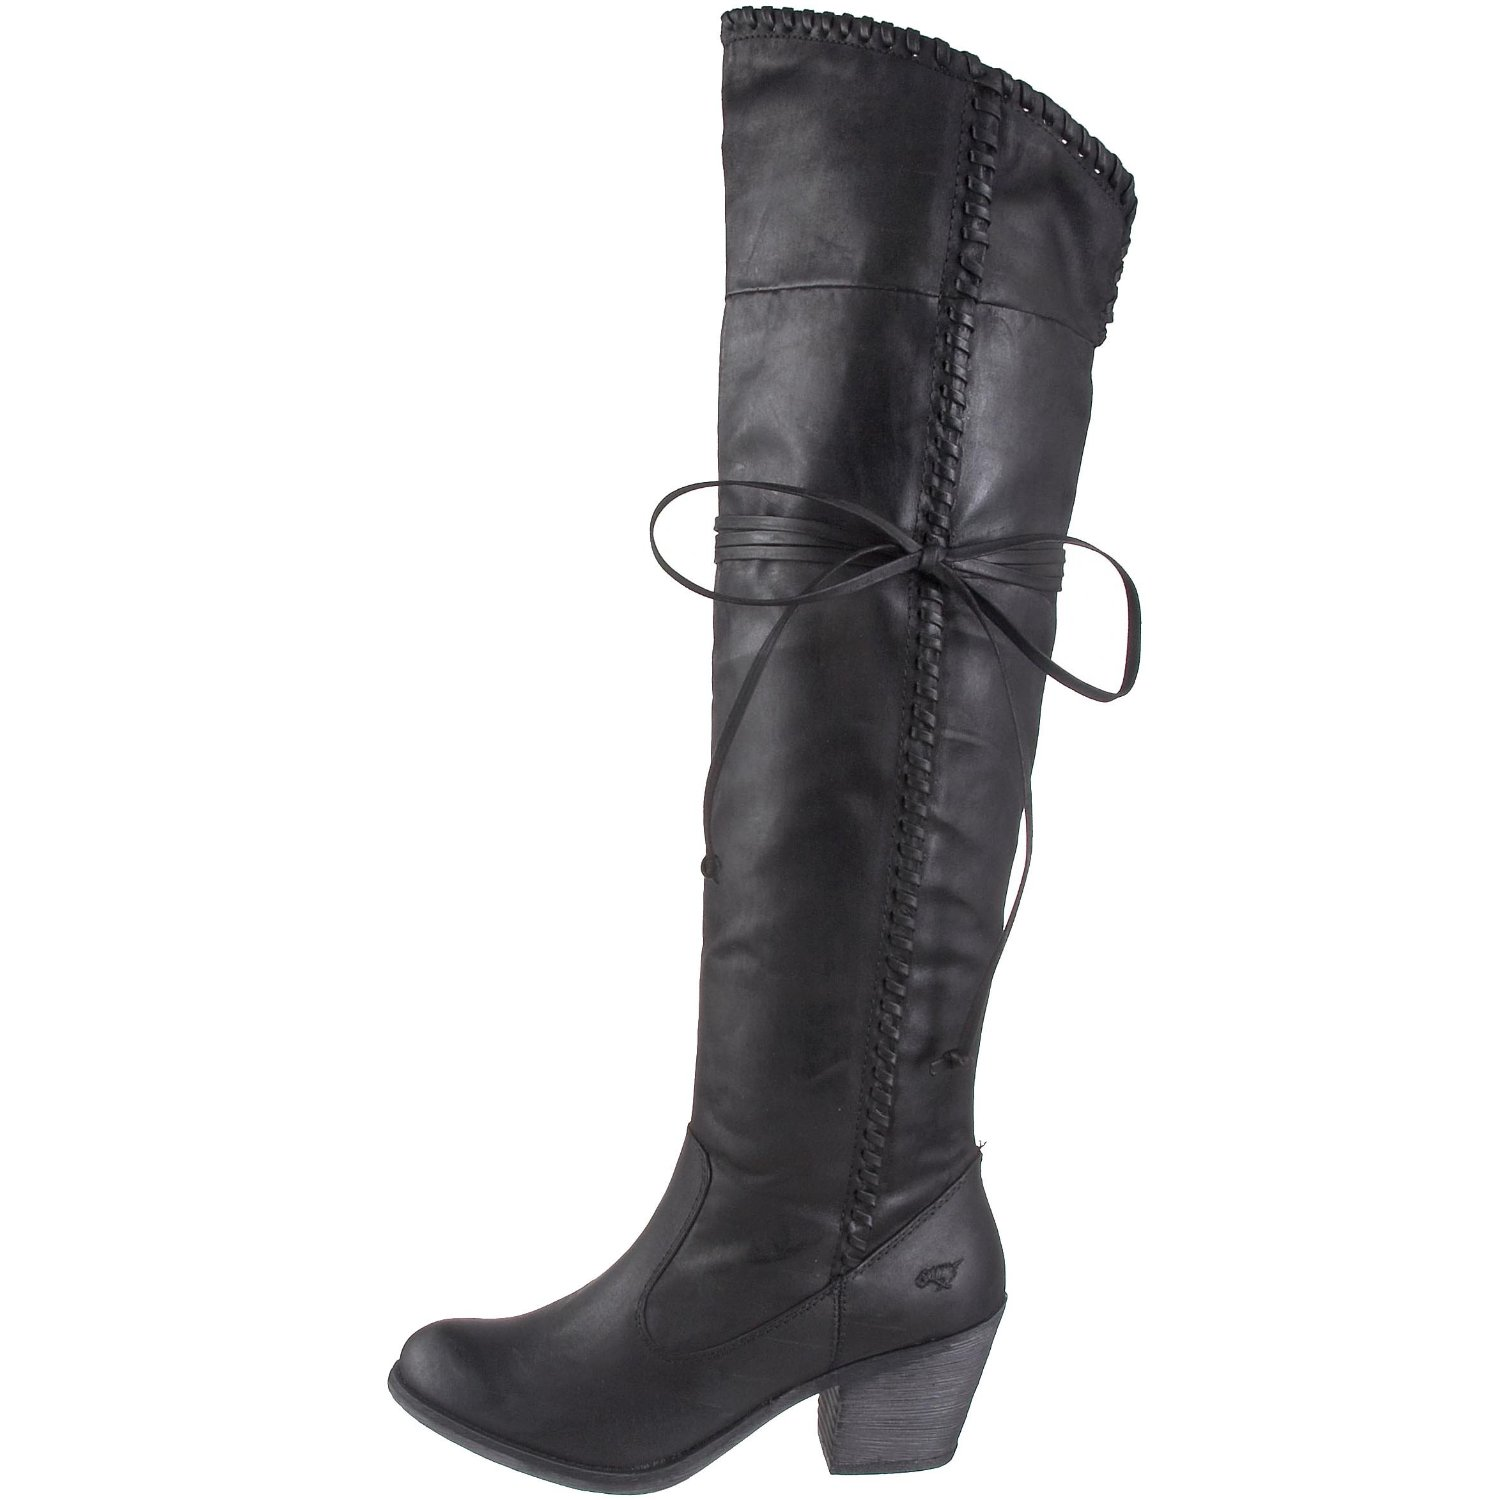 Western style vegan over the knee boots